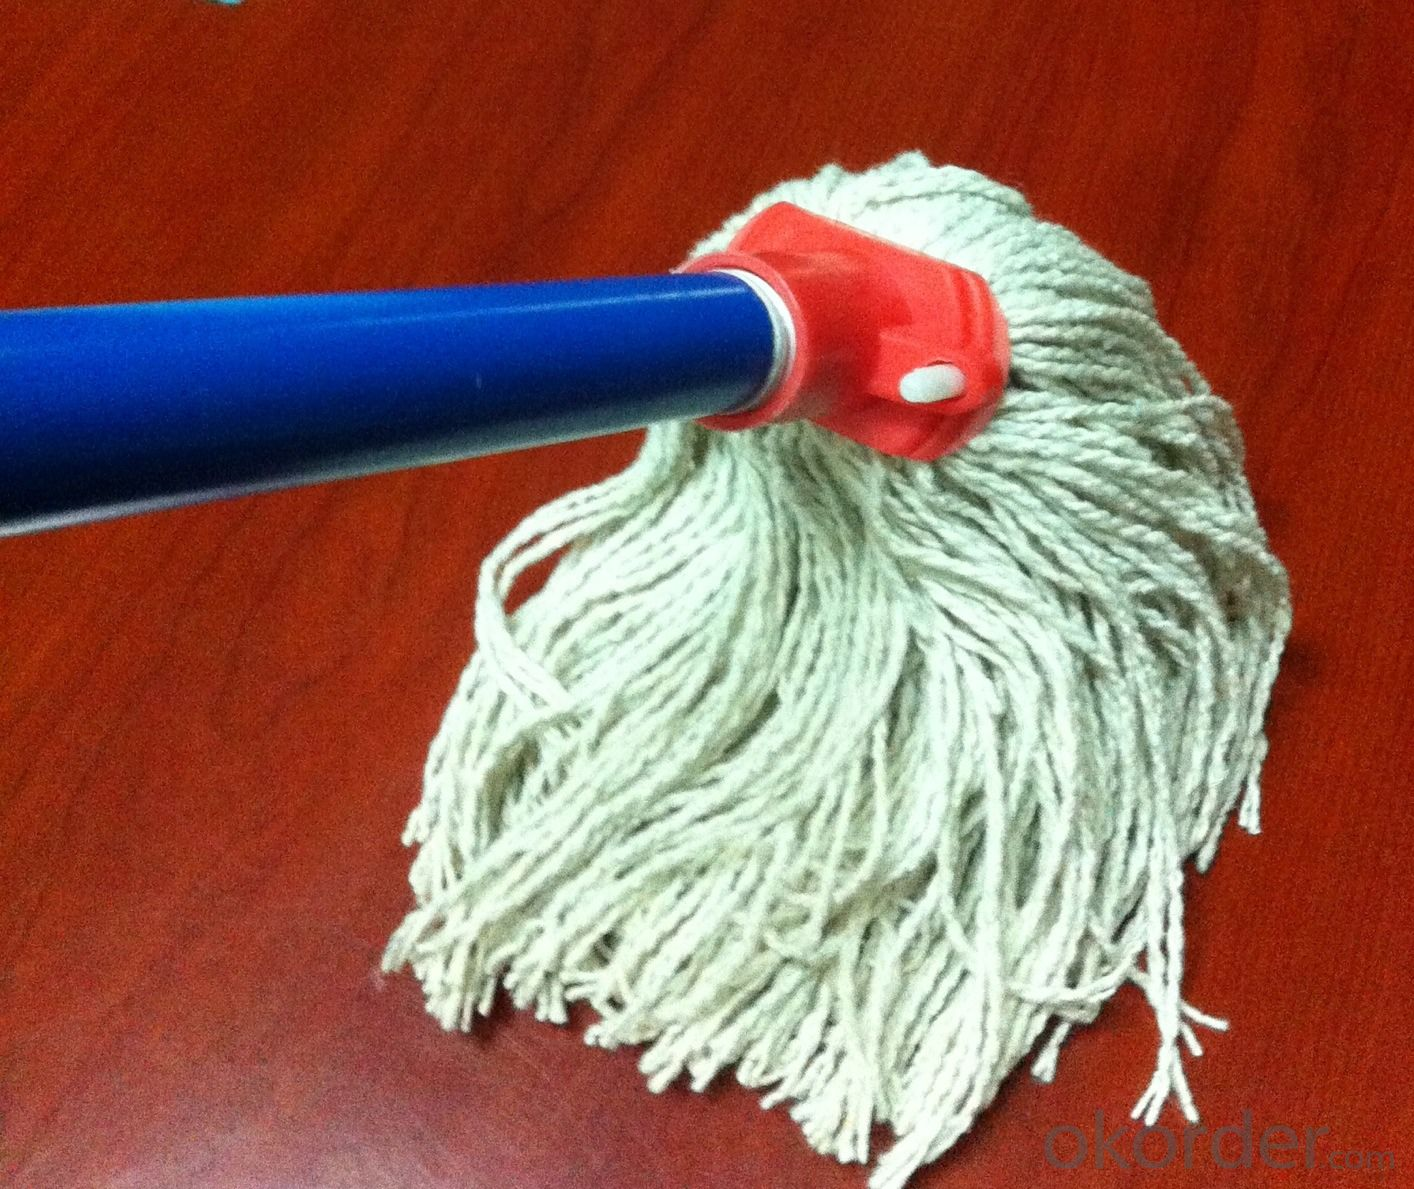 Fiberglass Broom Handle for Cleaning Industry